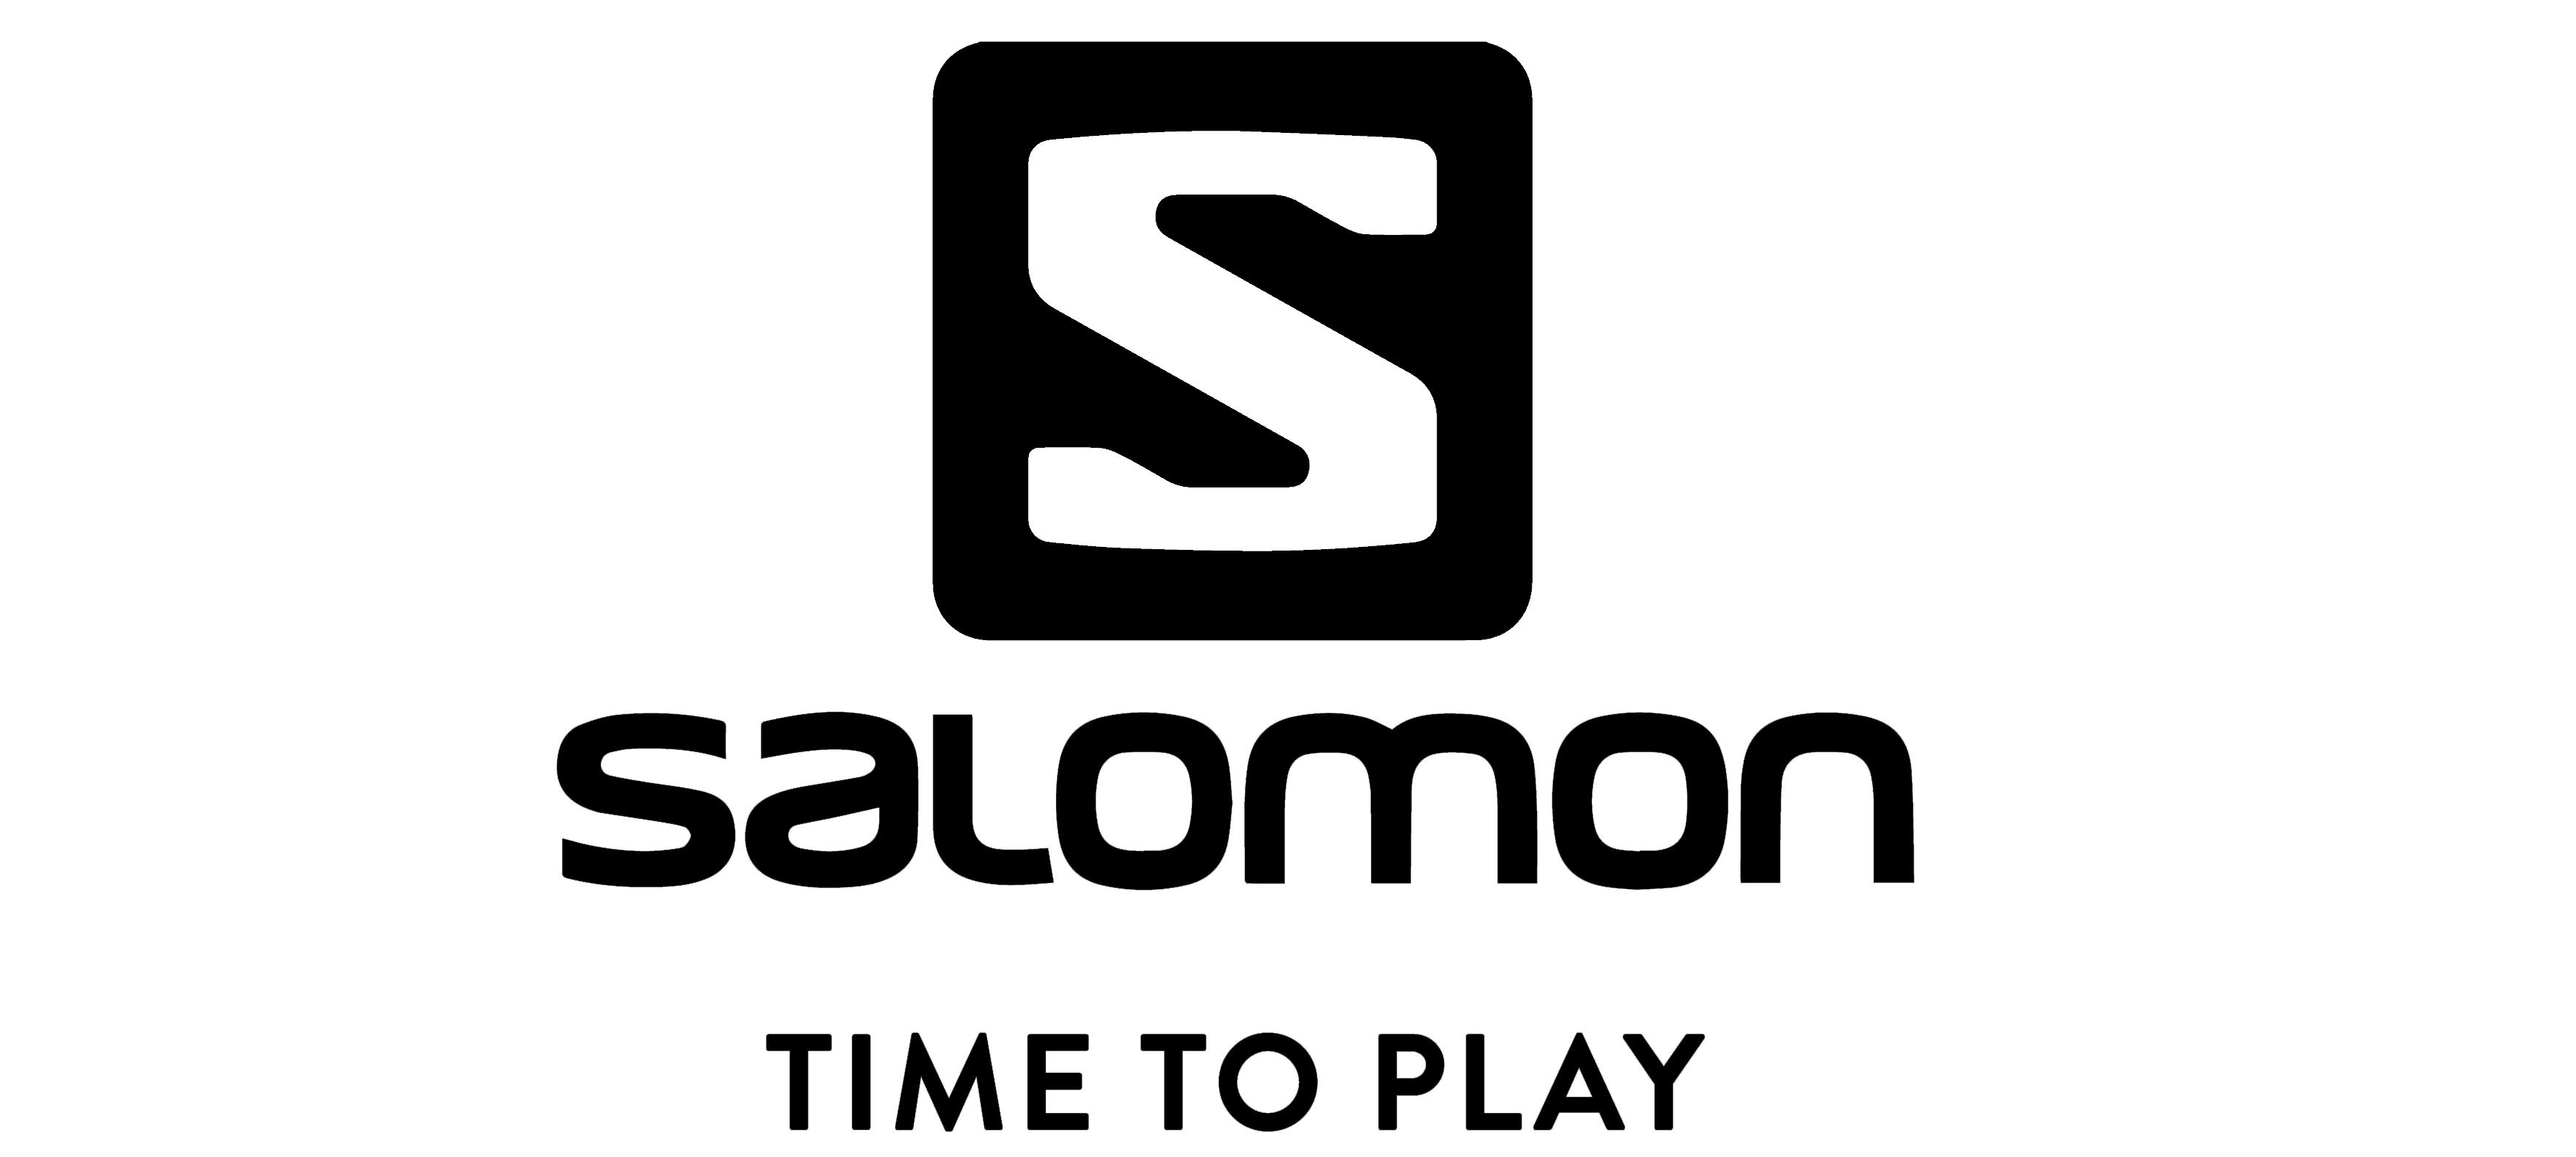 logo Salomon time to play BLACK 2